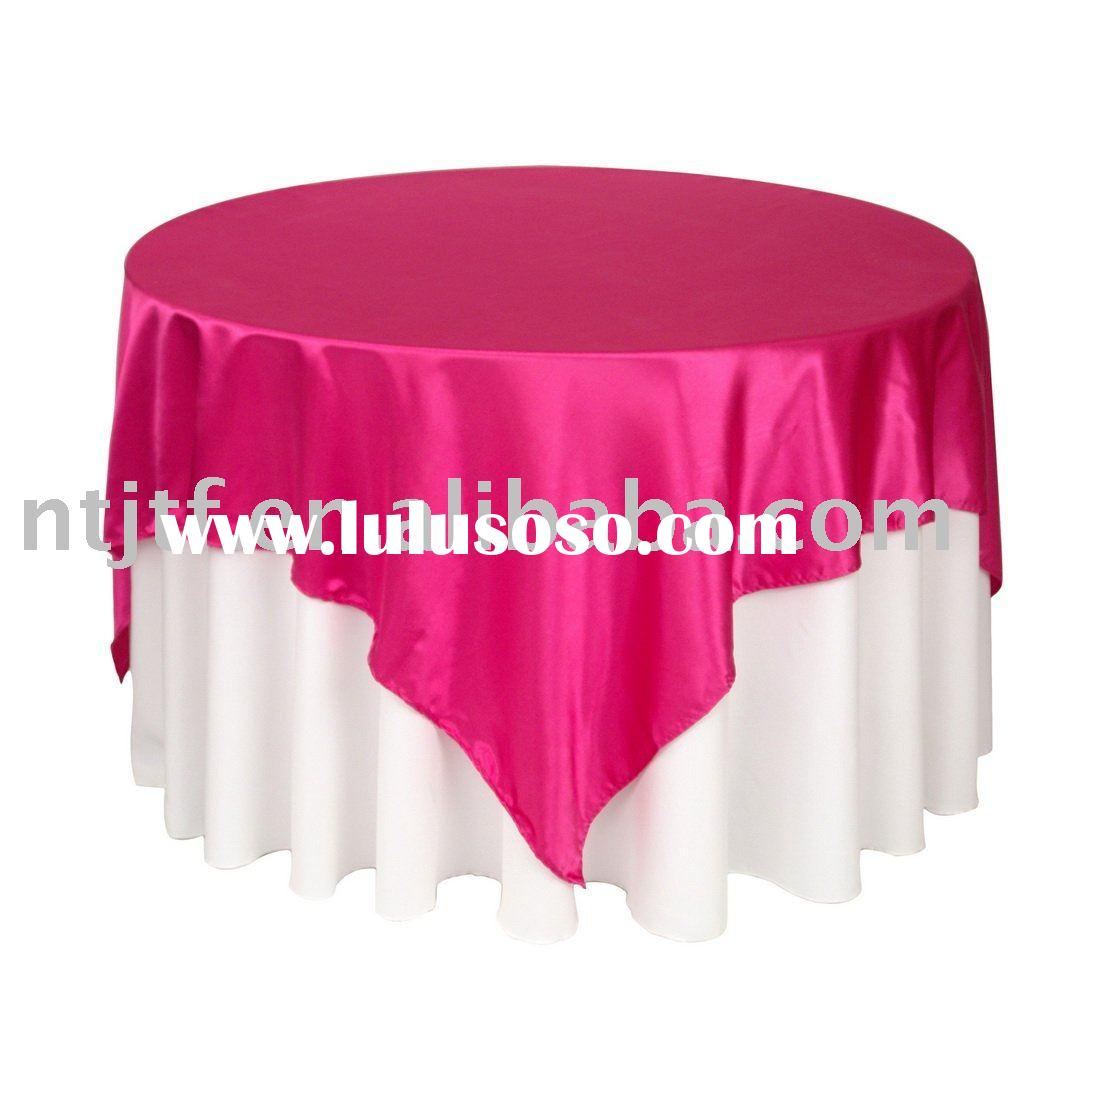 Charmant Table Satin Manufacturers In Lulusoso Com Page 1